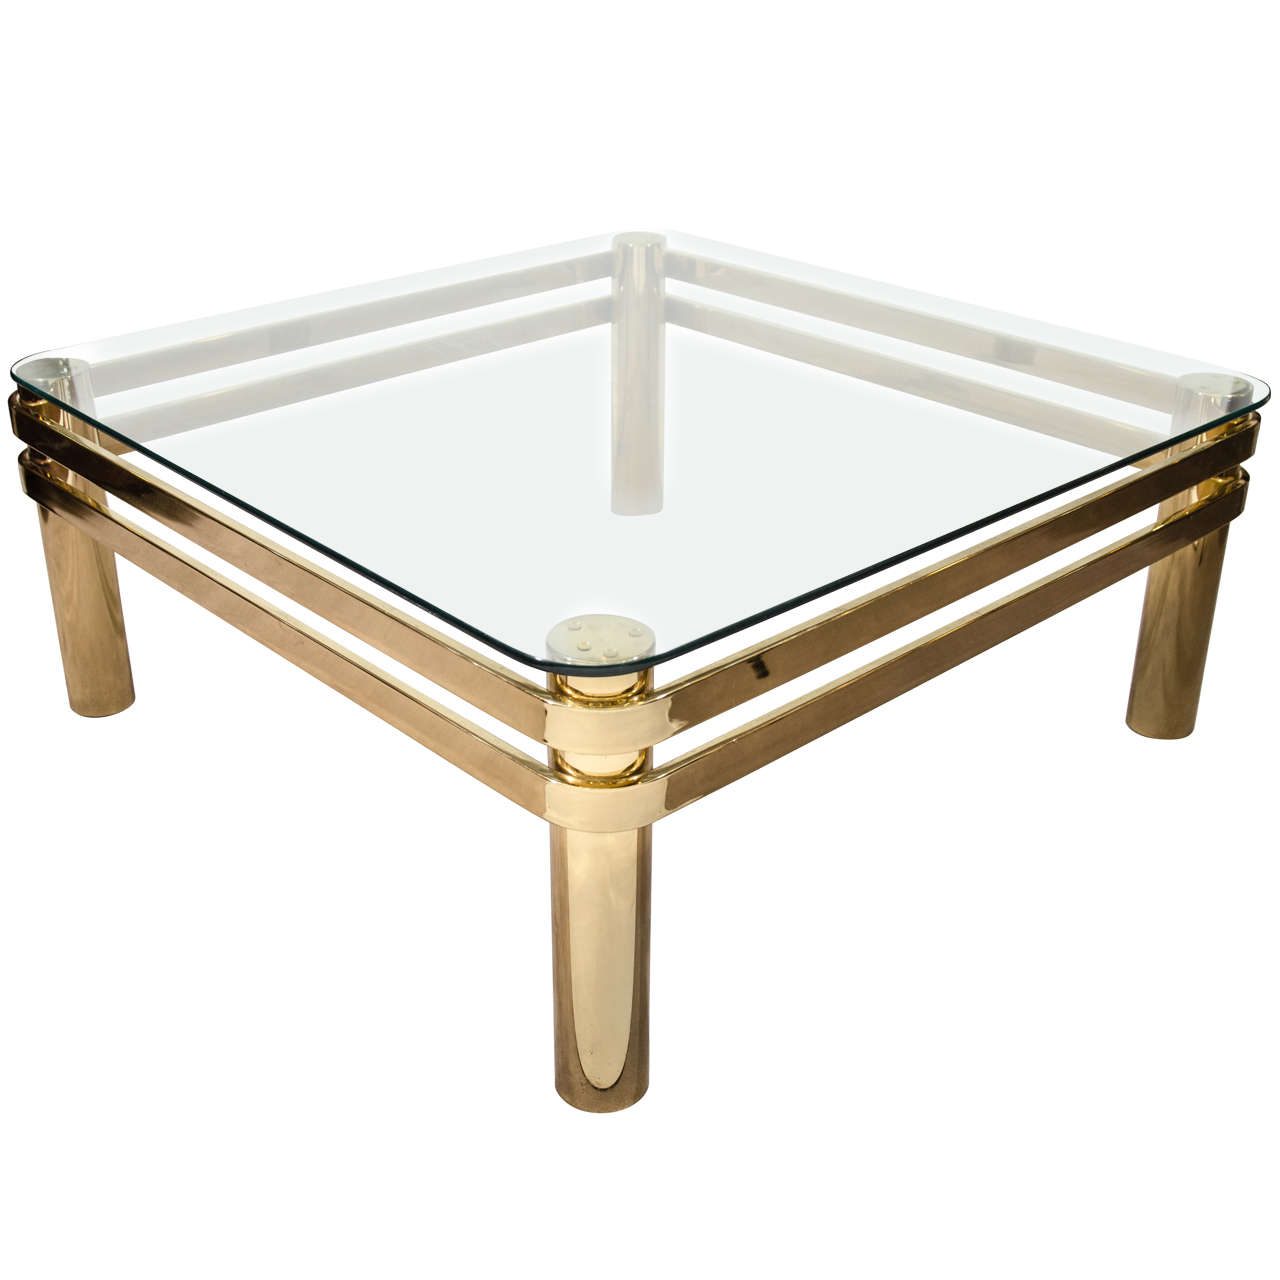 Brass And Glass Coffee Table With Ribbon Band Detailing At